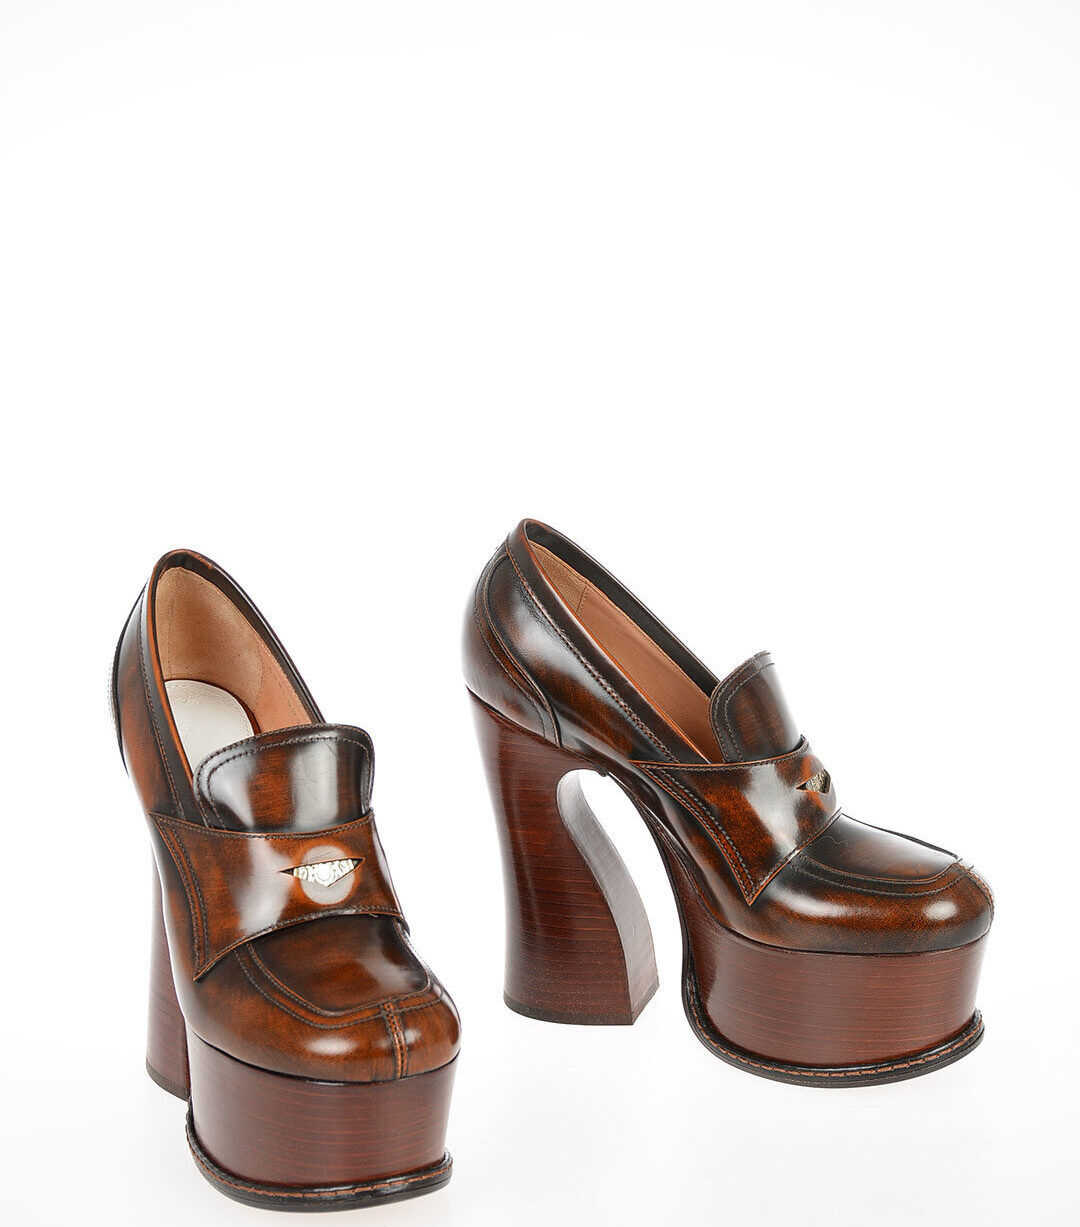 MM22 12cm Leather Loafers thumbnail